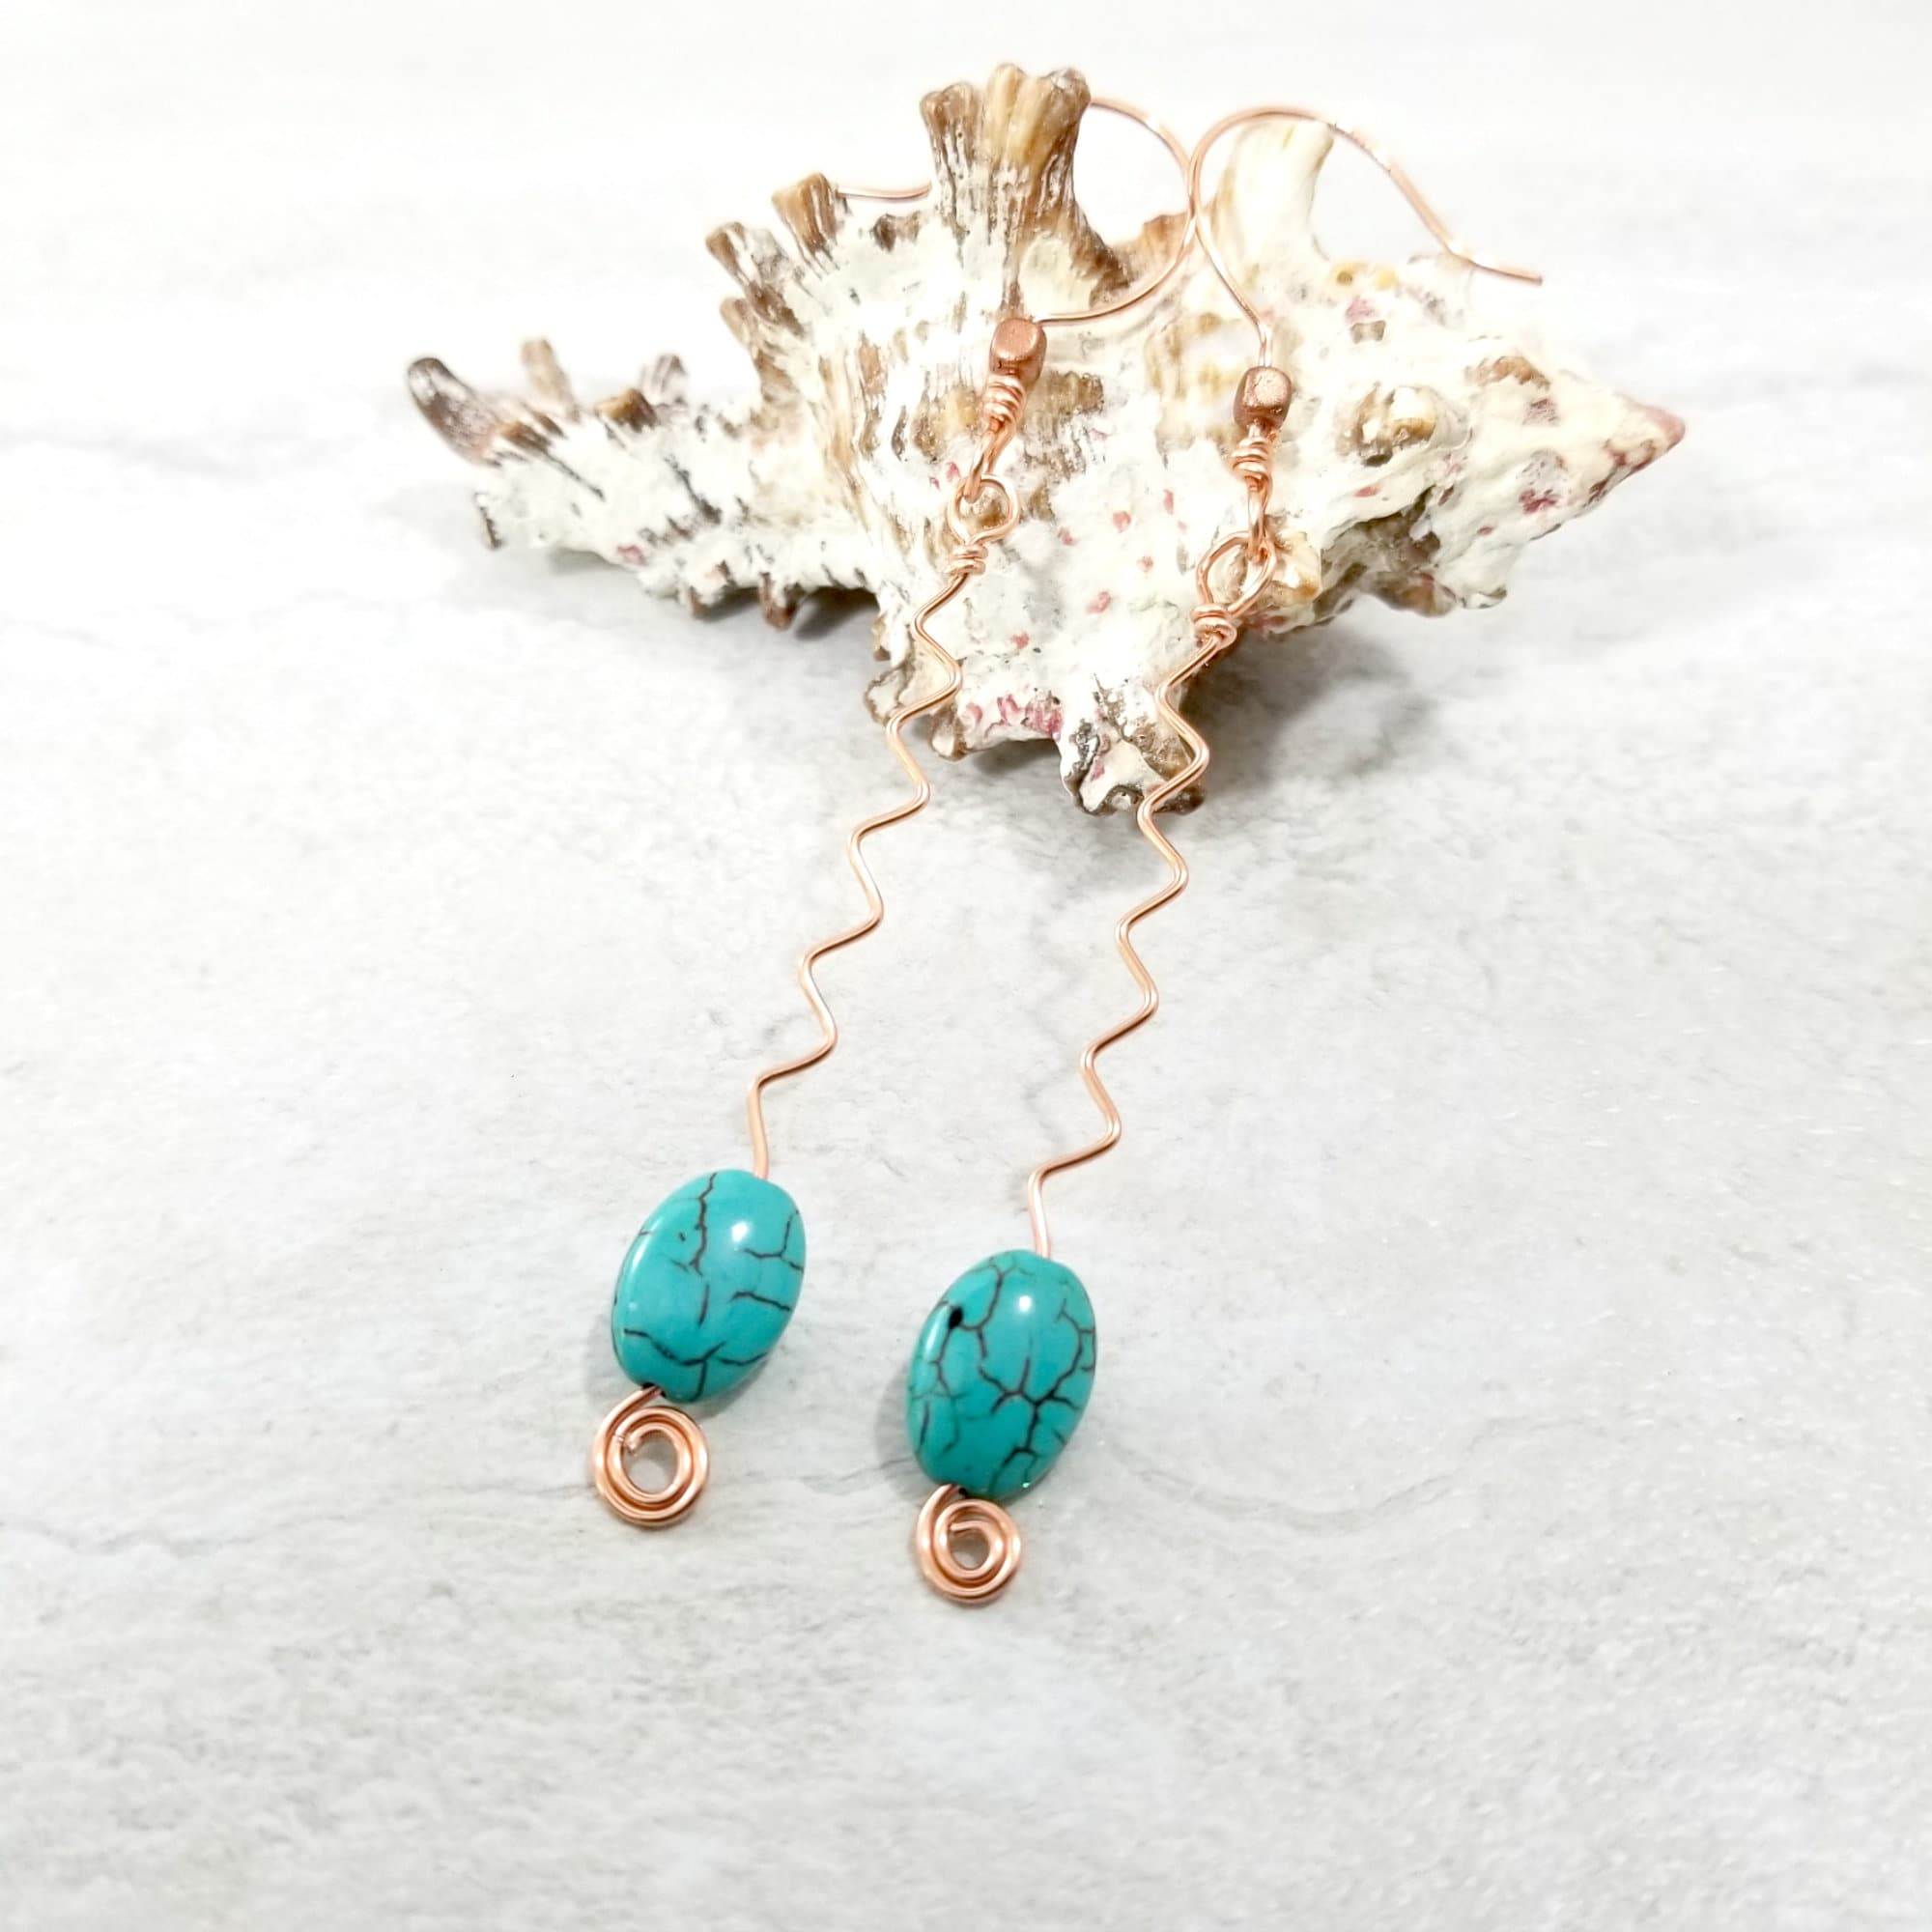 Turquoise Moon Earrings Boho Jewelry Gifts for Her Gold Jewelry Hippie Modern Jewelry